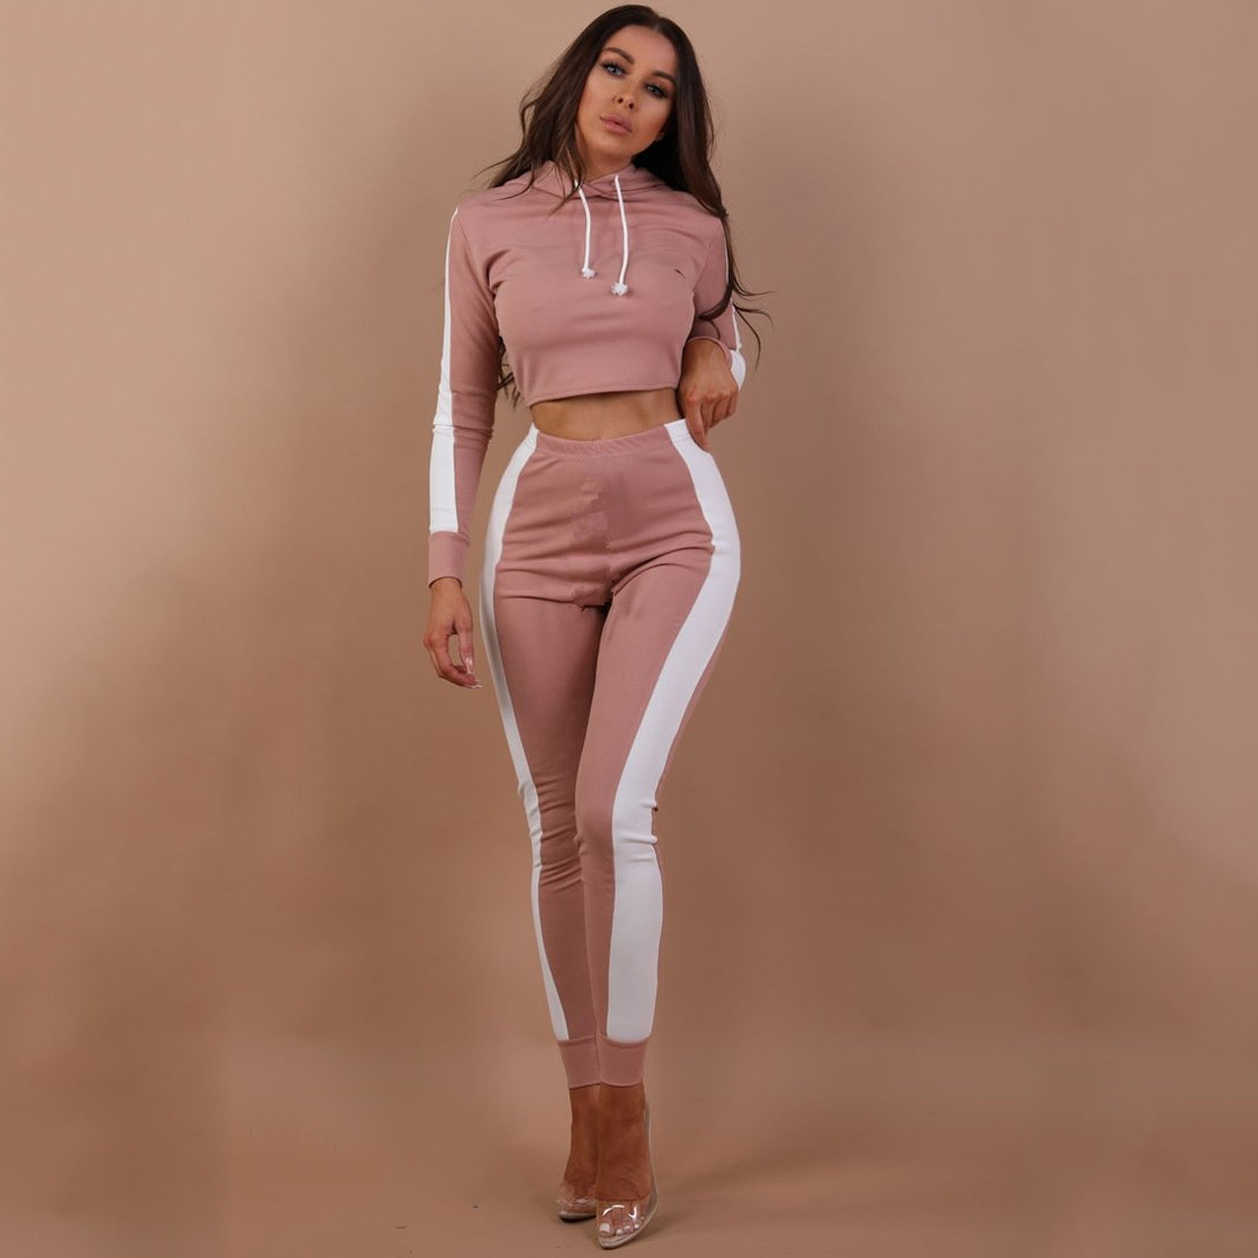 3f7194c5f8c Detail Feedback Questions about Two piece set Women workout Fashion  tracksuit Long Sleeve Crop Top Hooded Kpop Hoodies Pants Striped Casual  Bodycon 2 piece ...